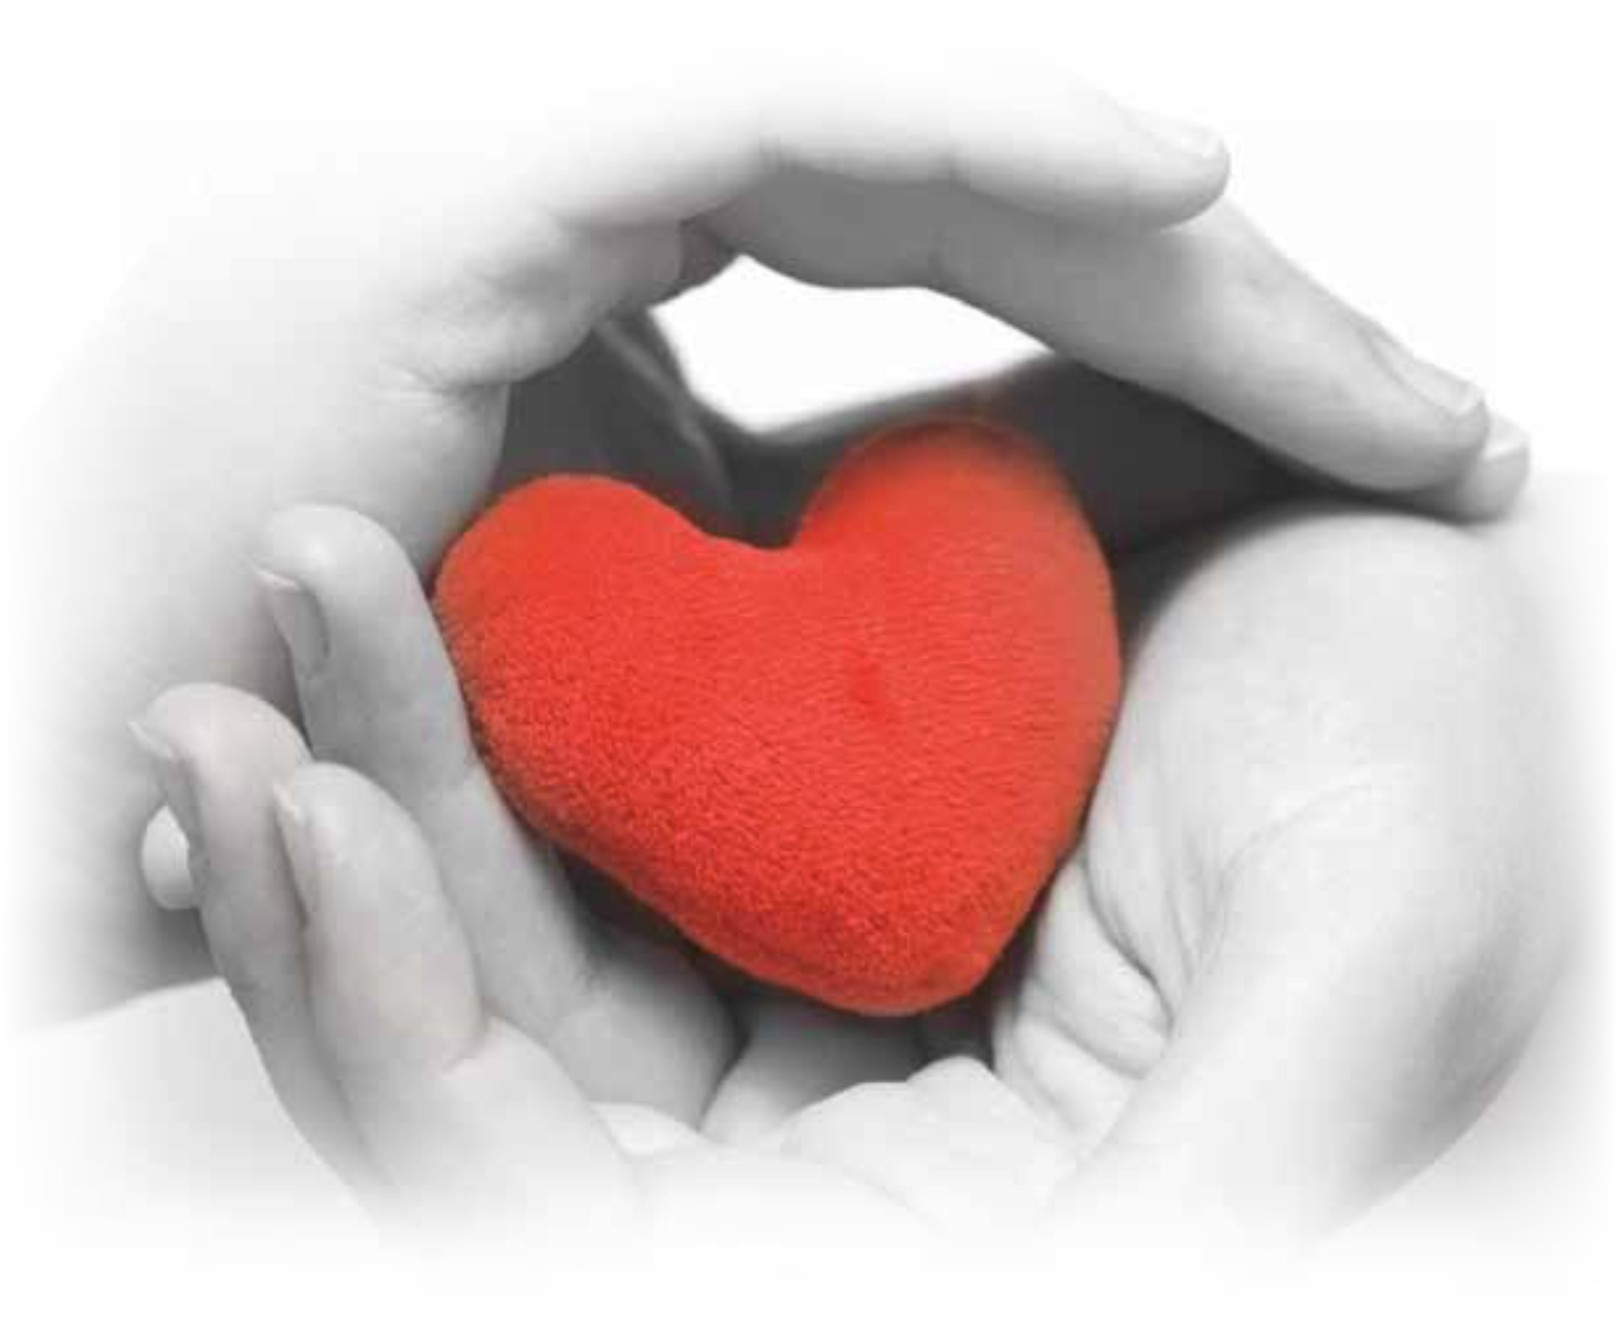 Act Now to Save the Hearts of Those You Love : Dr Siddhant Jain